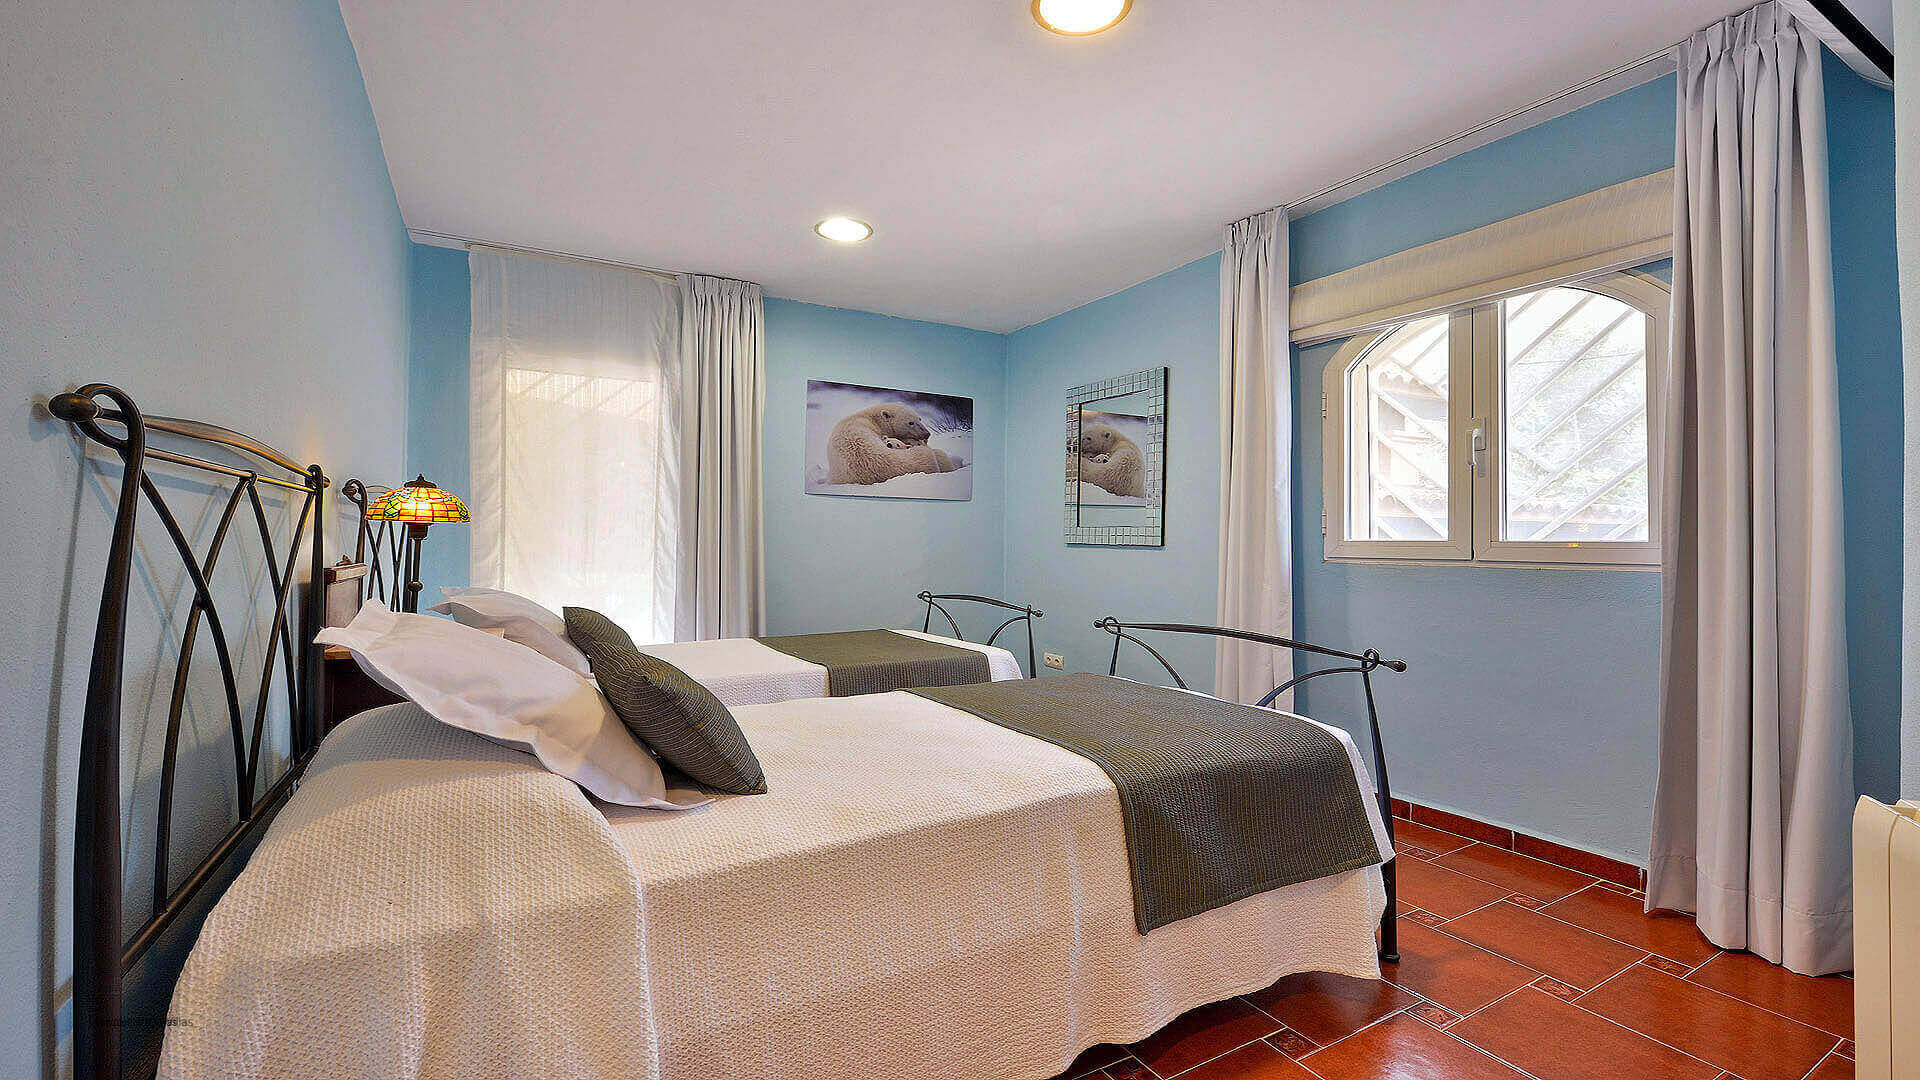 Cana Lucia Ibiza 42 Bedroom 5